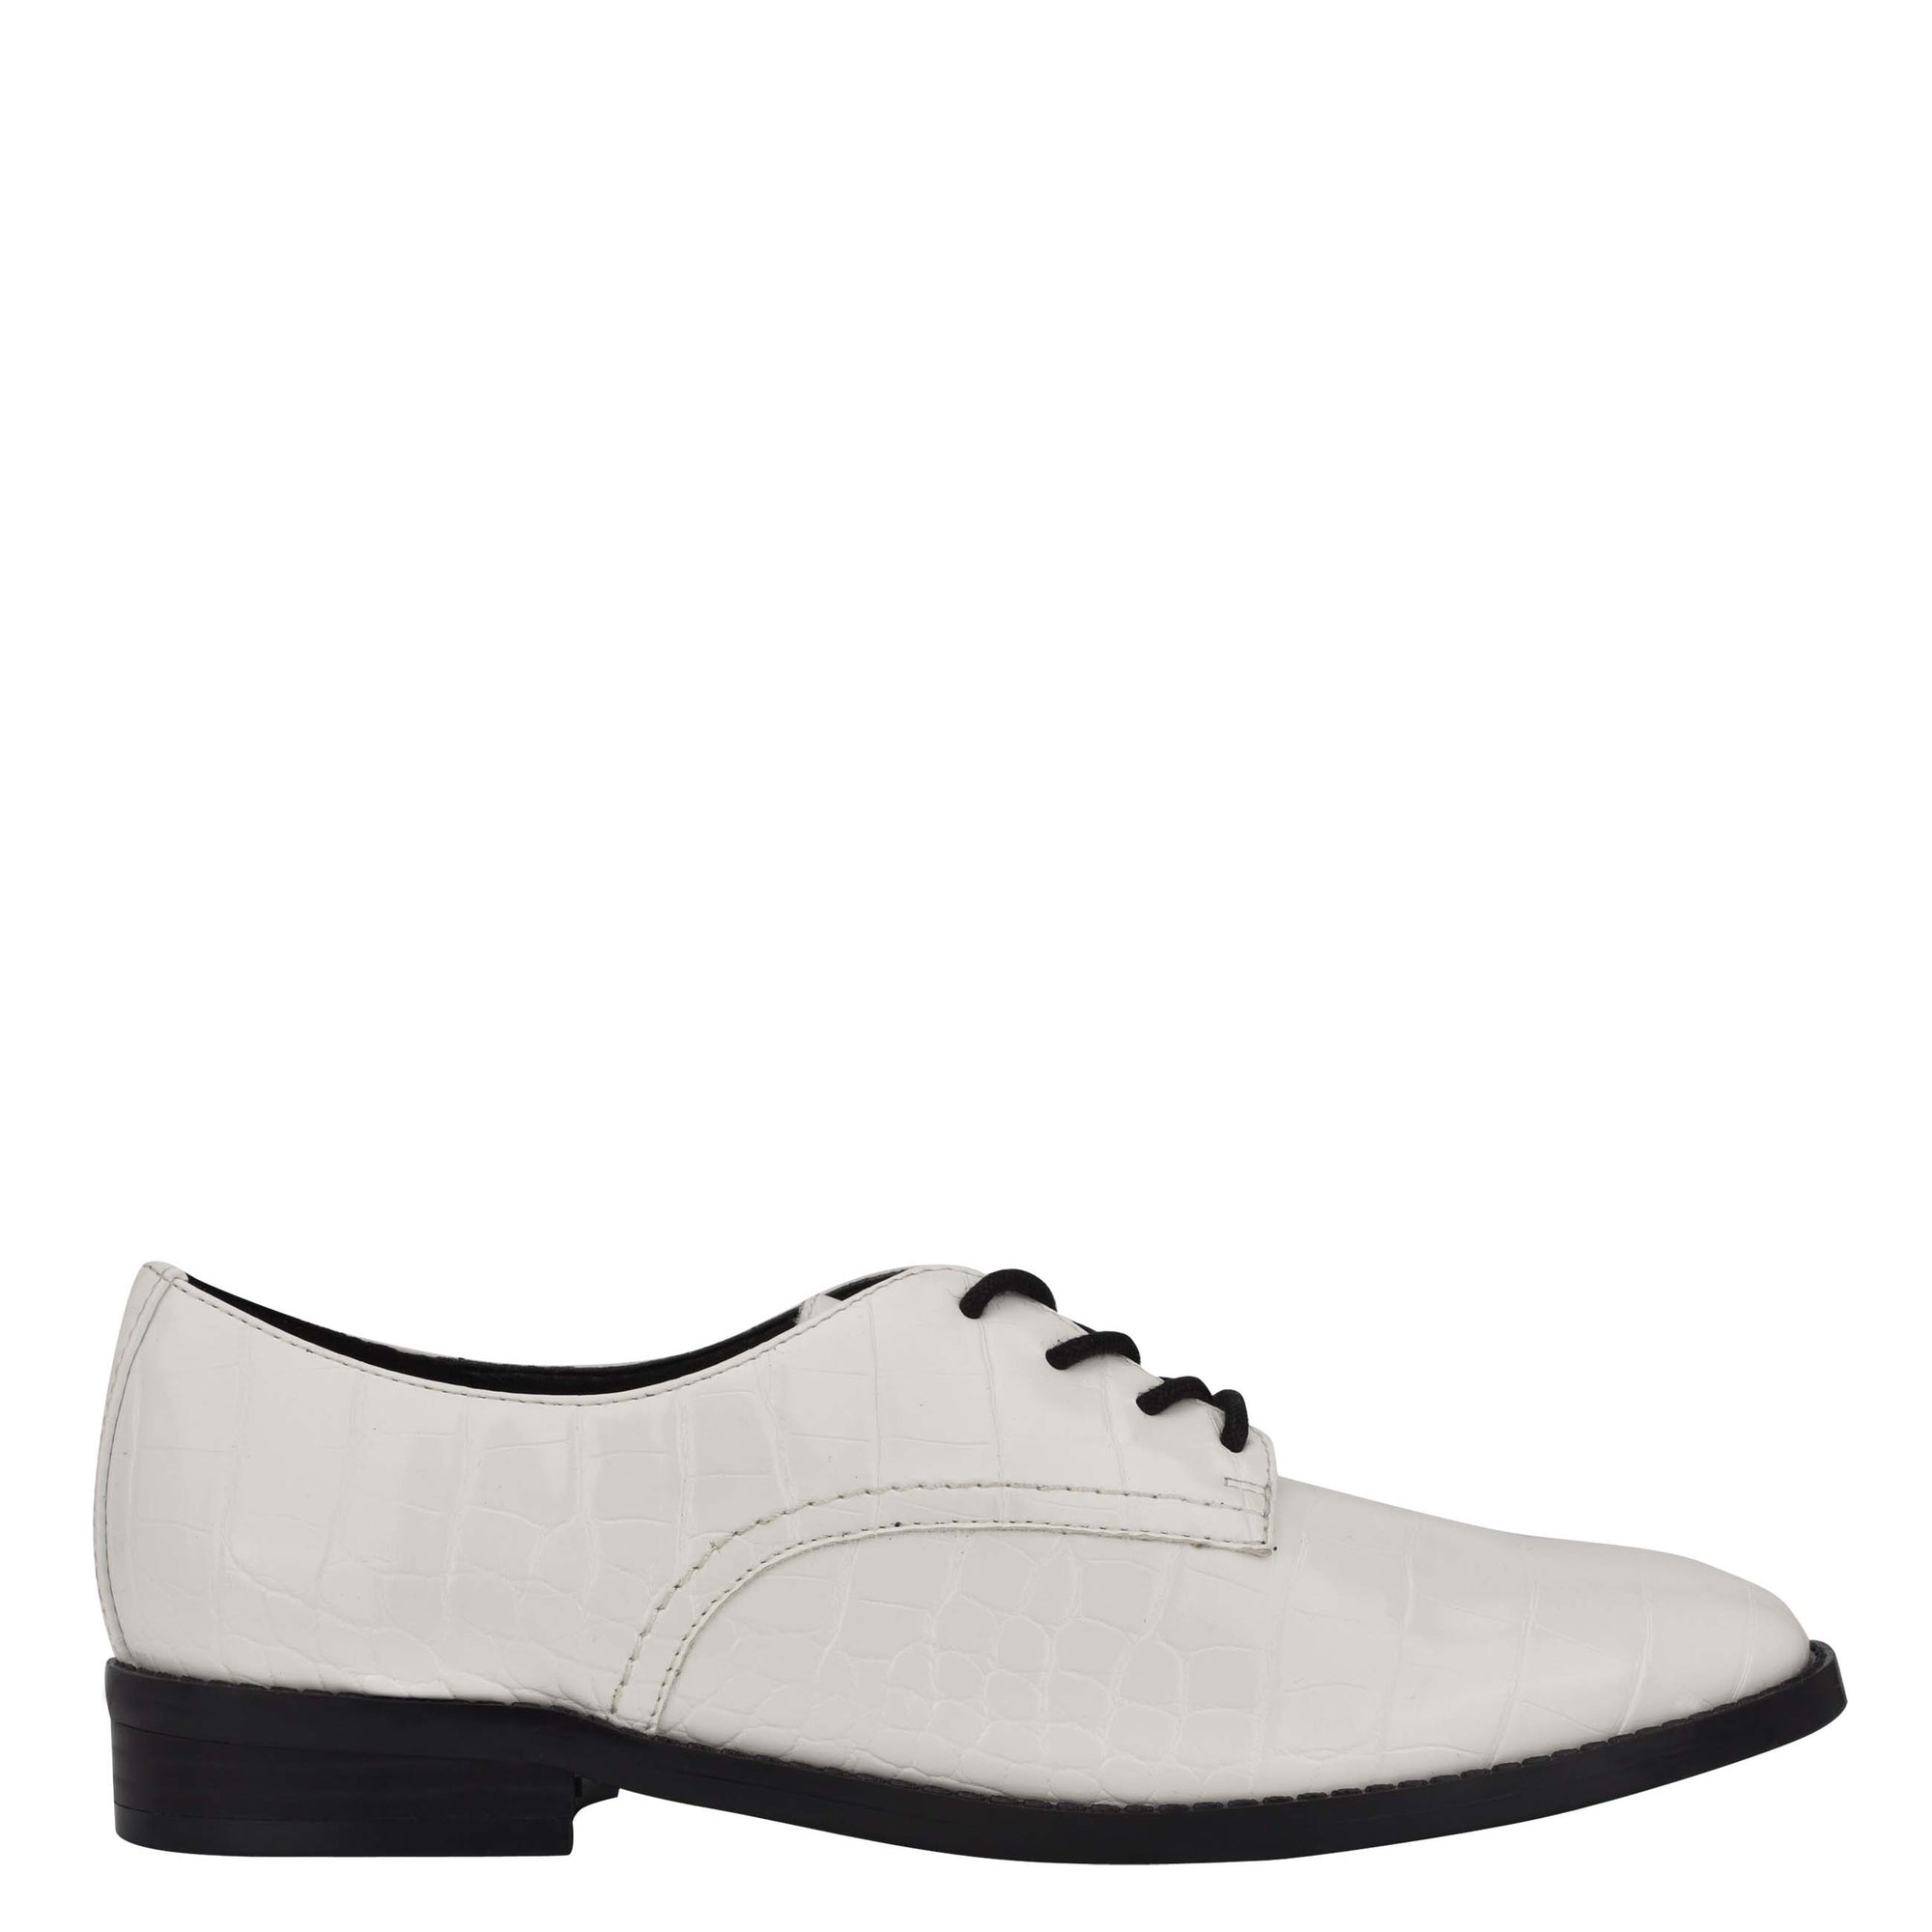 Maia Lace Up Oxfords